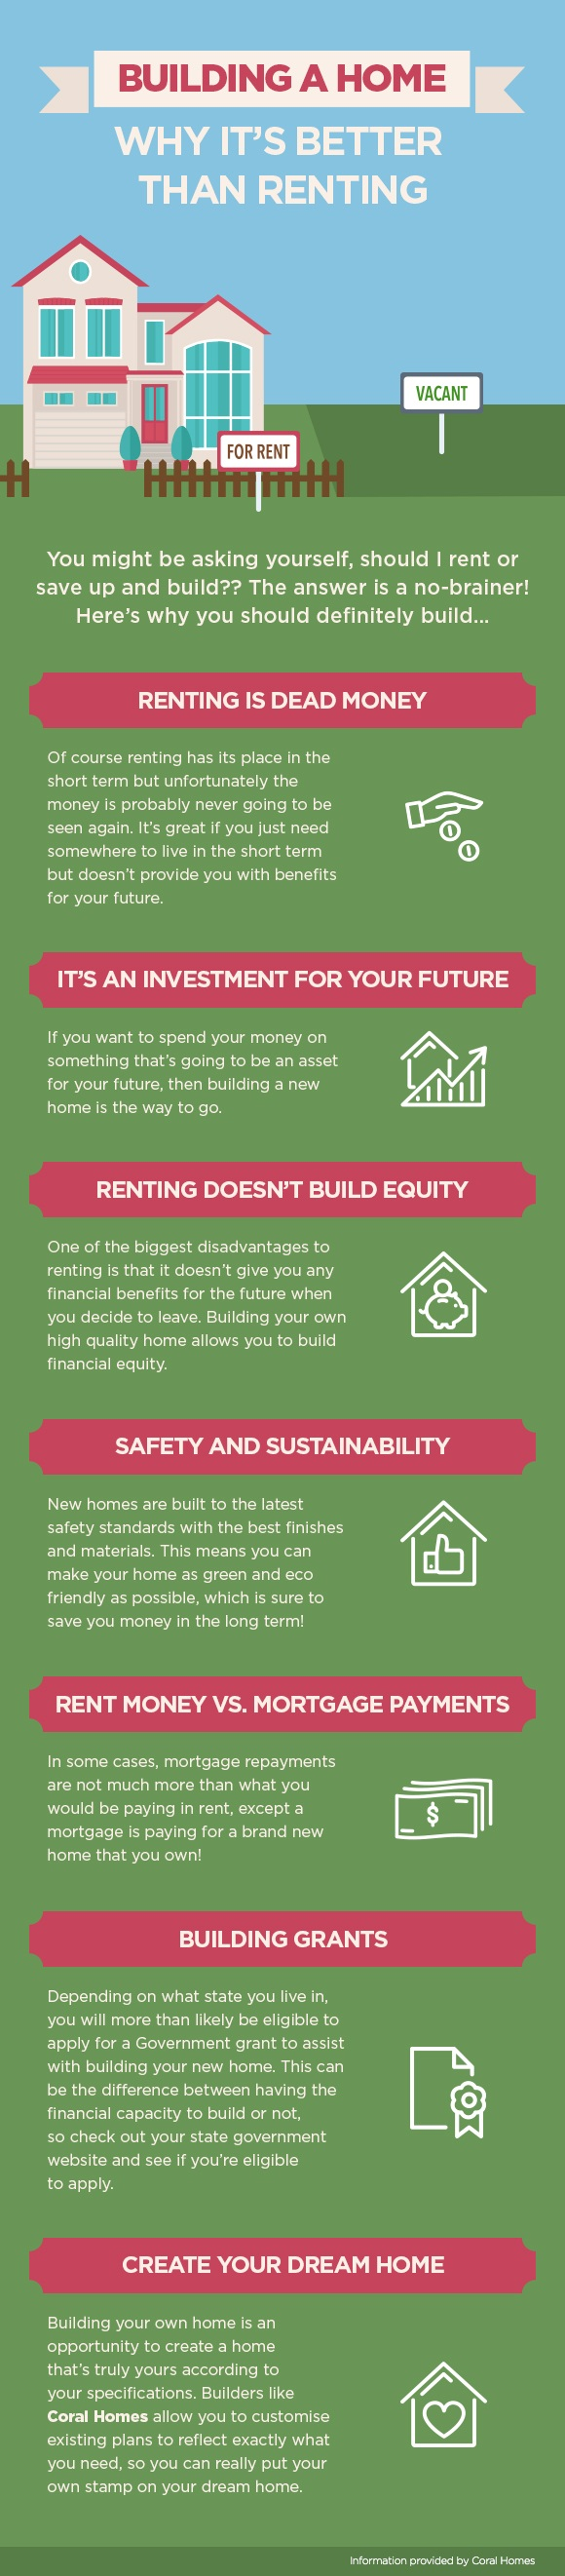 Building A Home: Why It's Better Than Renting? [Infographic]